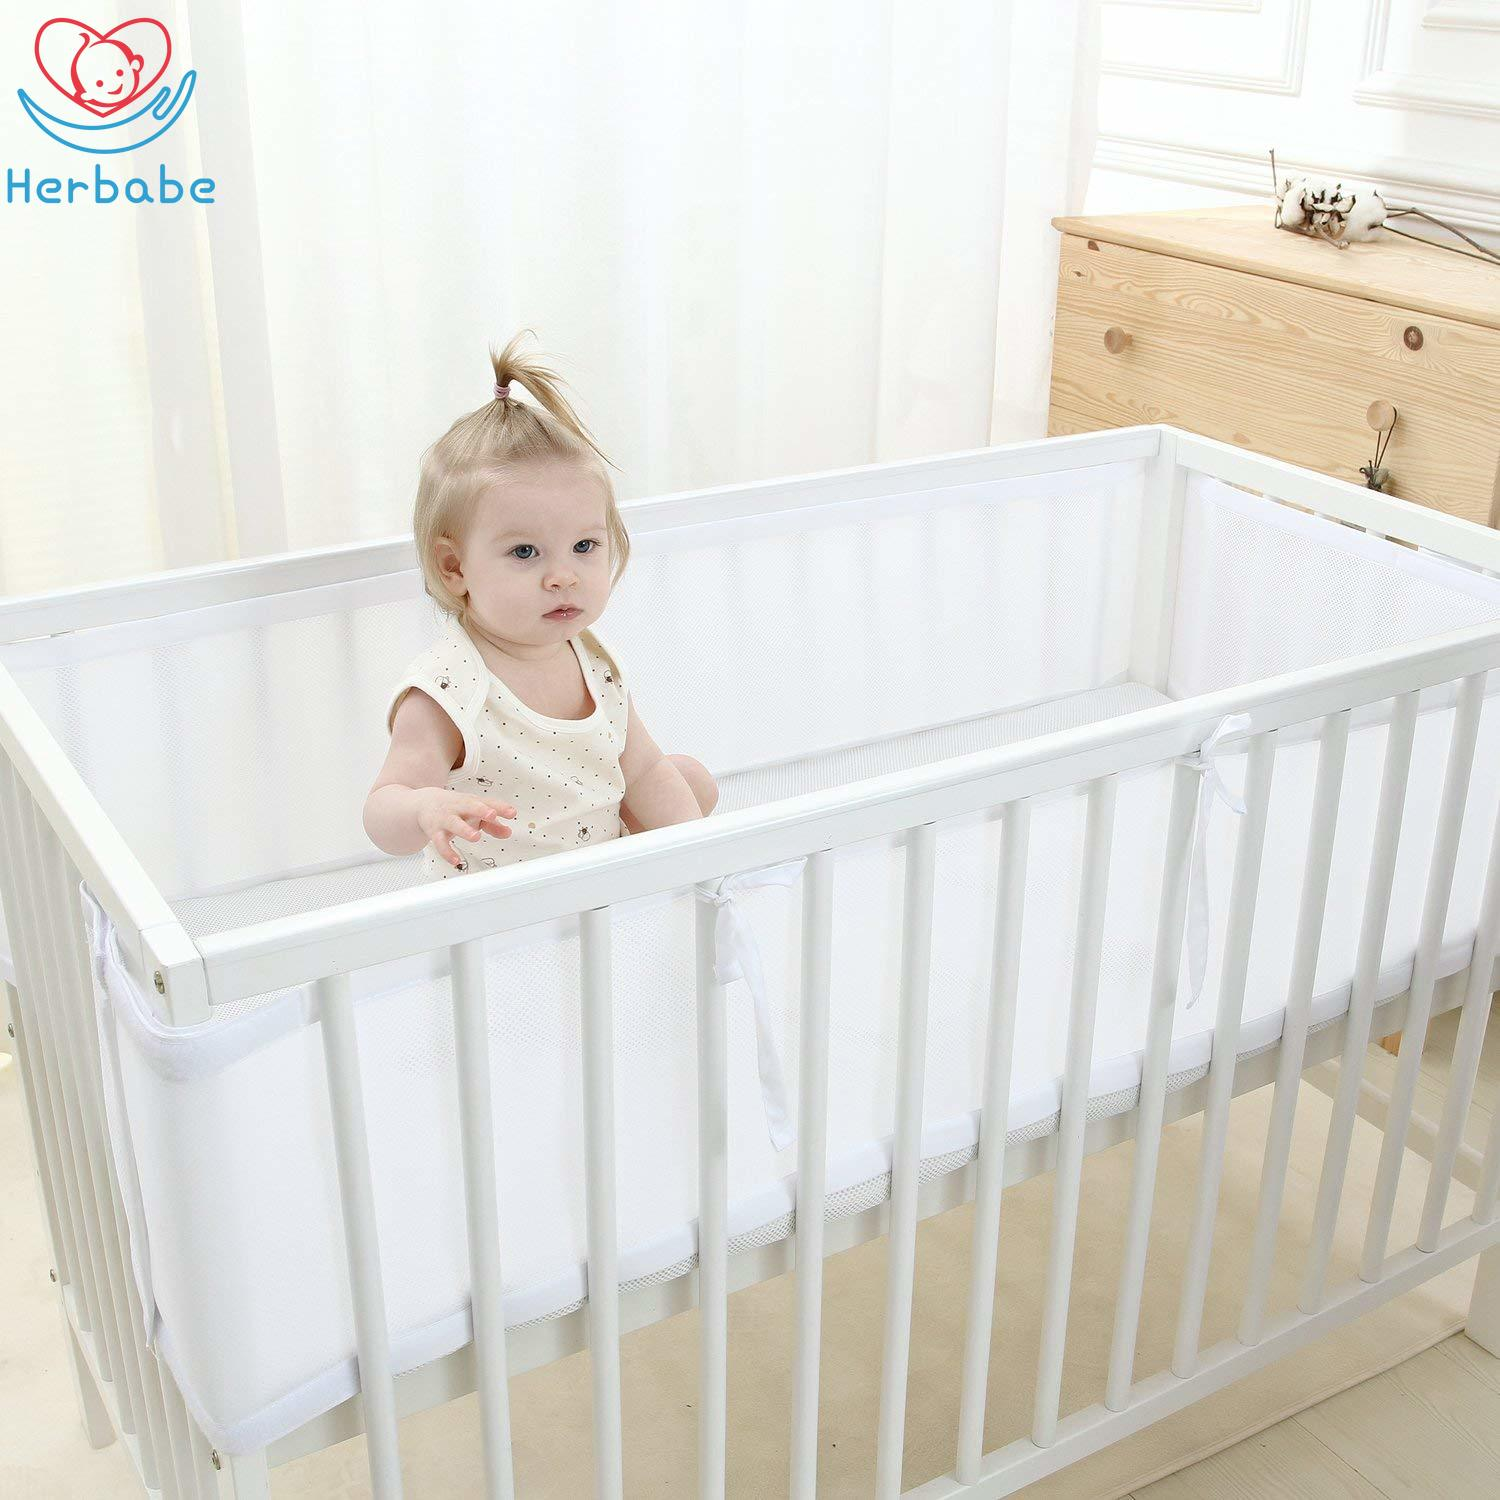 Herbabe 2pcs Newborn Baby Crib Bedding Set Playpen Fence Breathable Kids Bed Bumper Safety Bed Rail For Baby Room Accessories